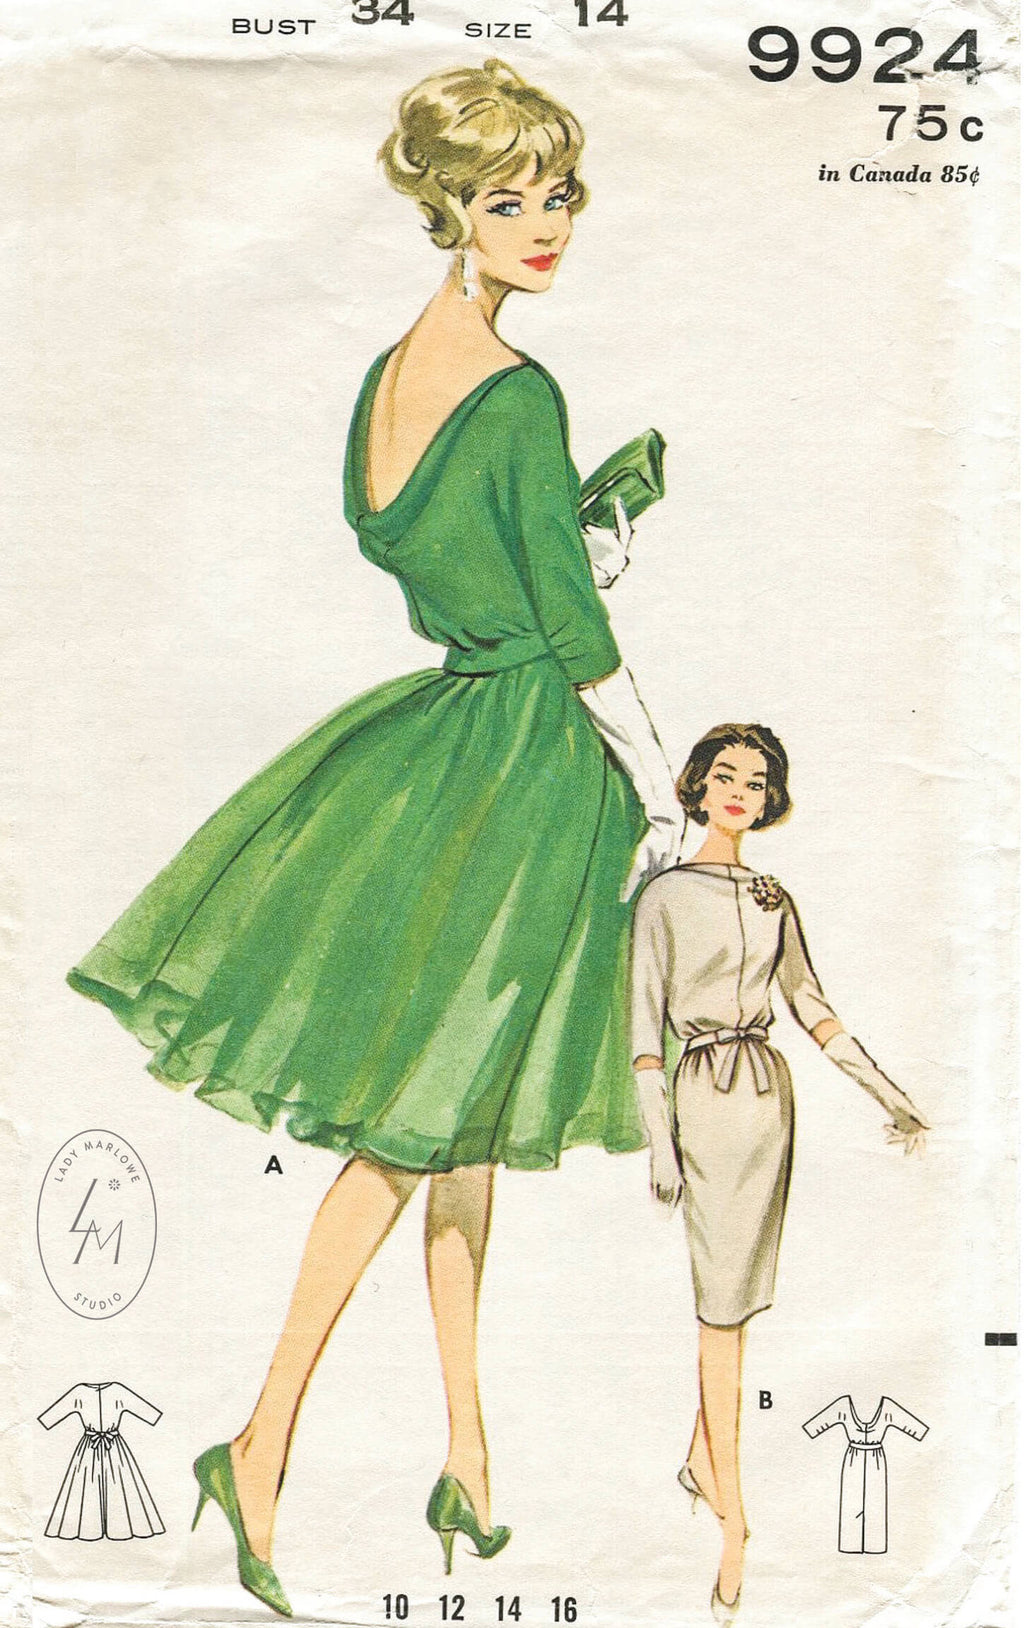 Butterick 9924 1960s cocktail dress sewing pattern